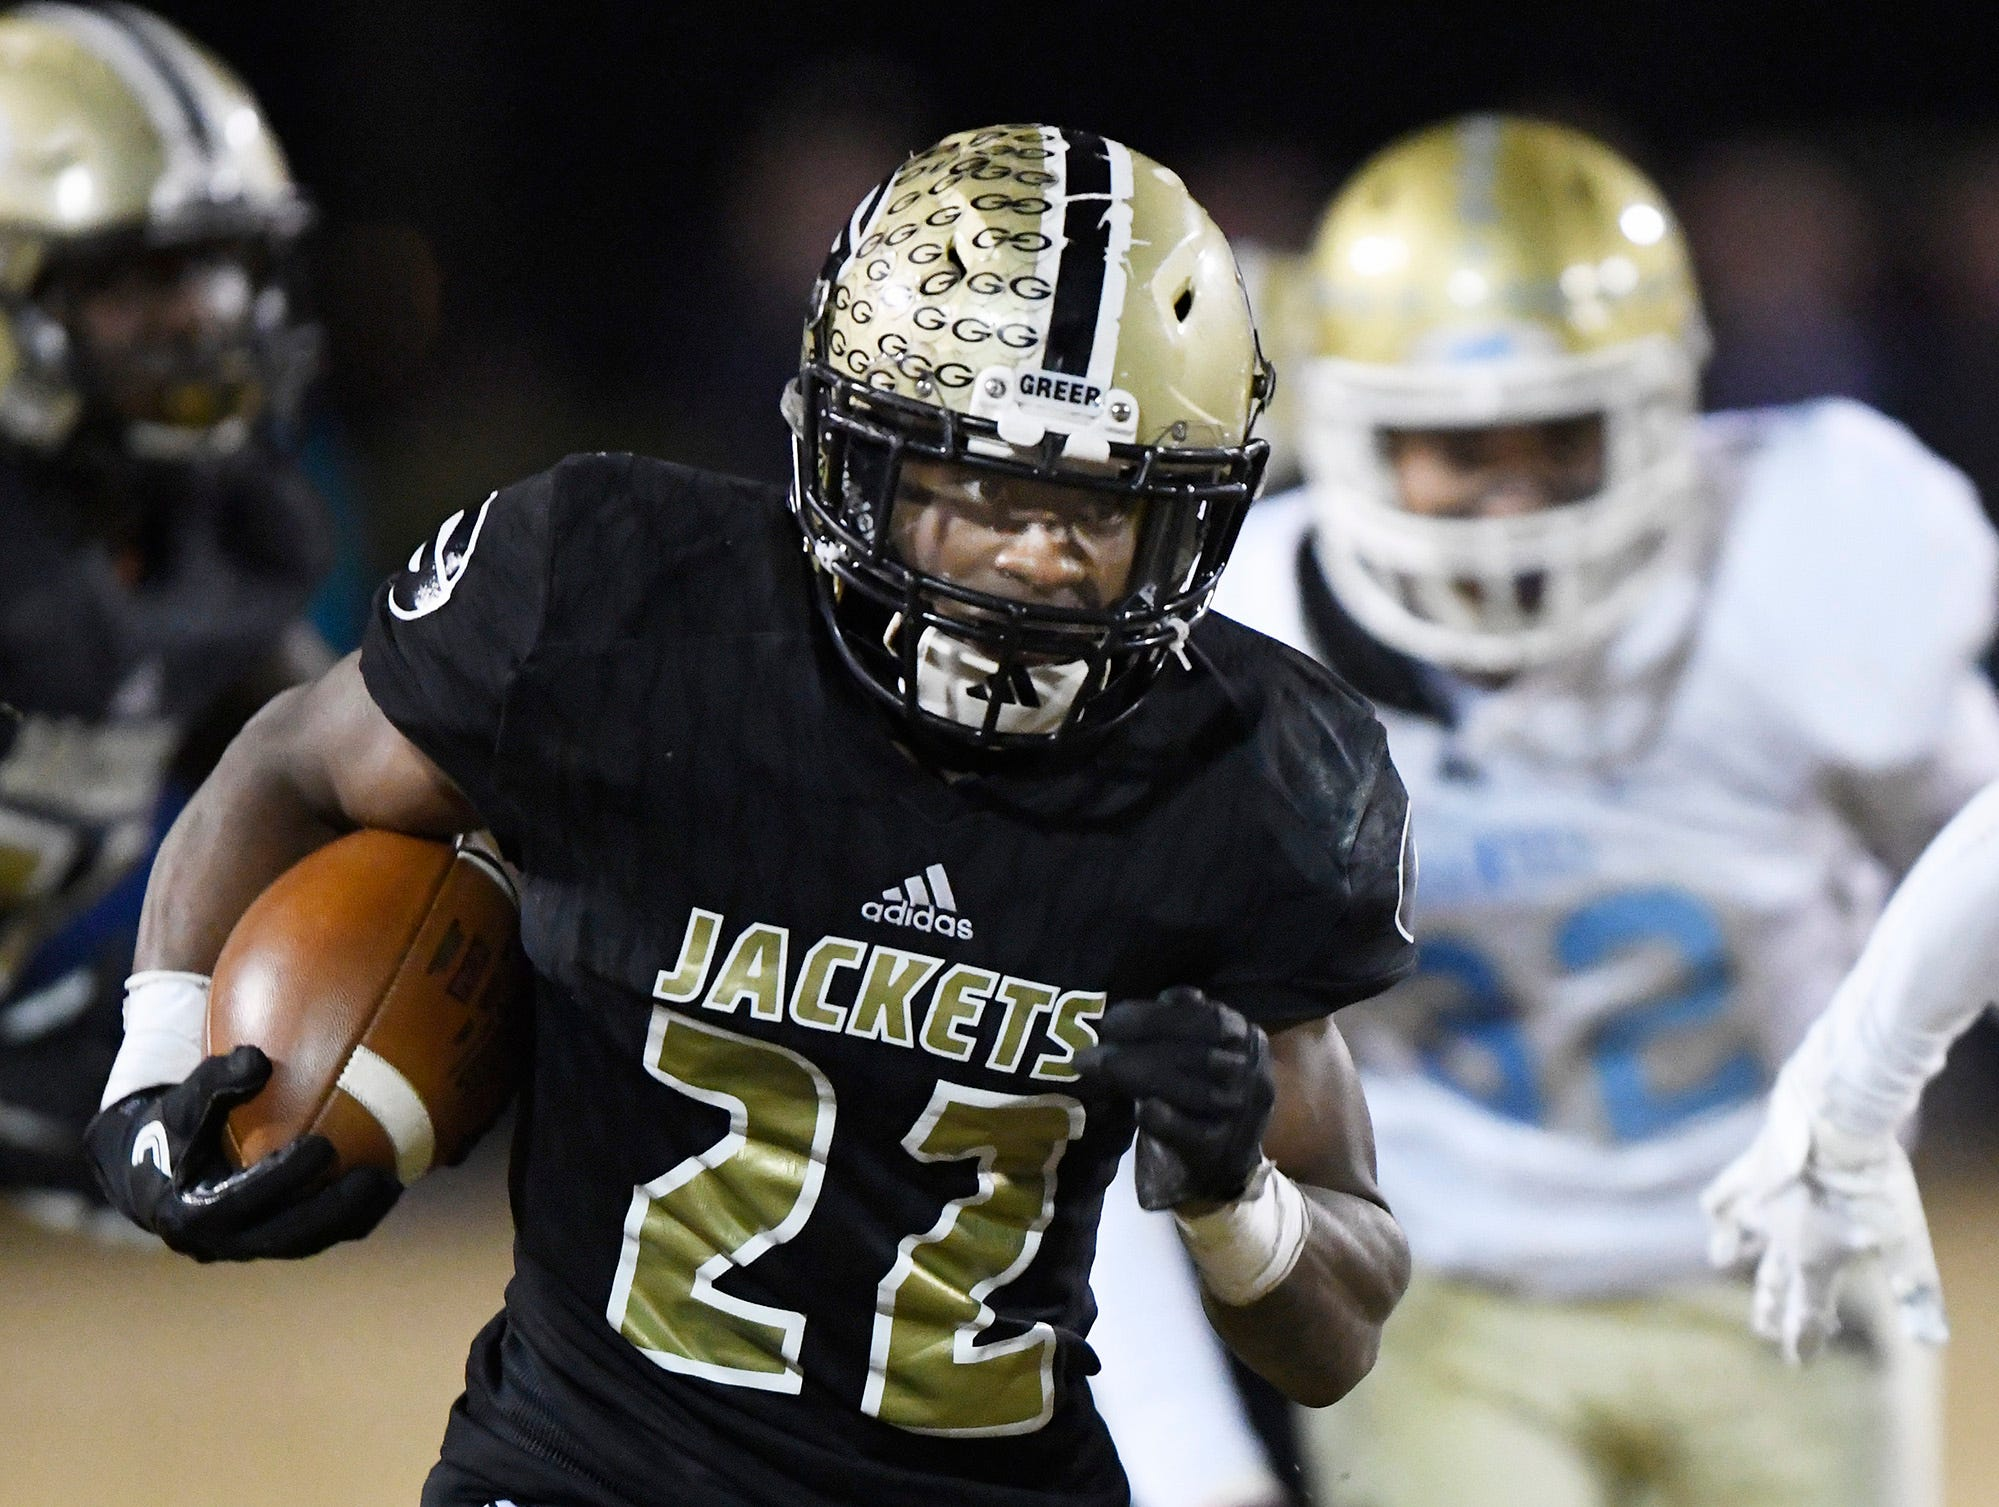 Greer's Dre Williams (22) takes off for touchdown against Daniel in the class AAAA upstate championship Friday, November 30, 2018 at Greer's Dooley Field.